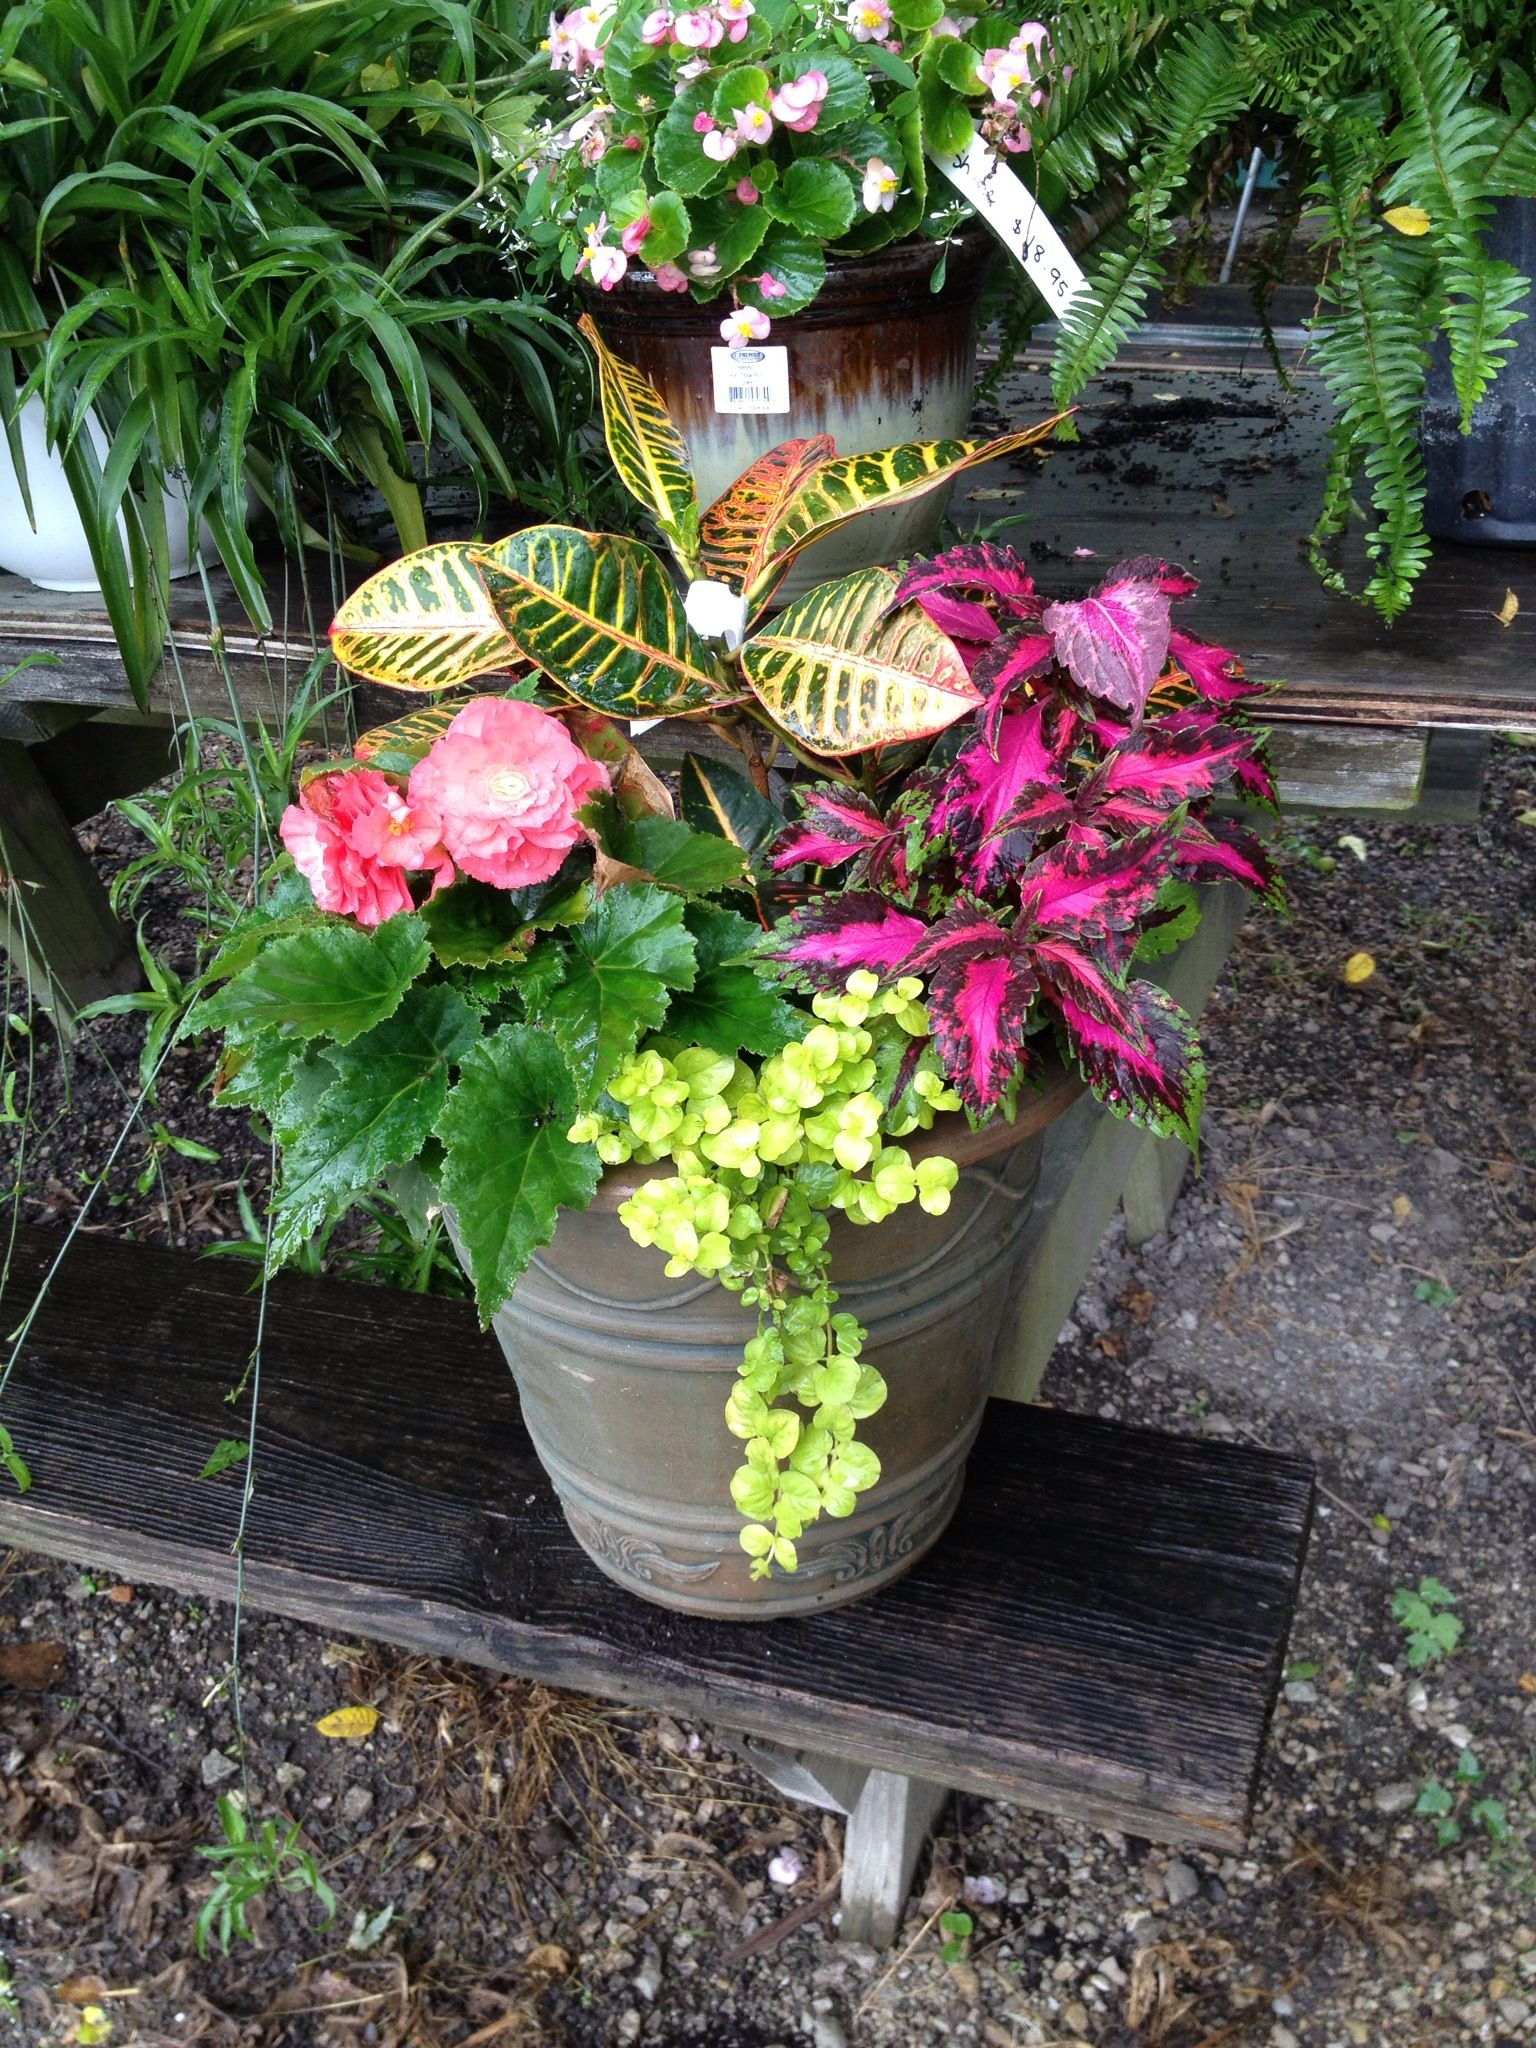 croton coleus tuberous begonia and creeping make for a colorful shade planter